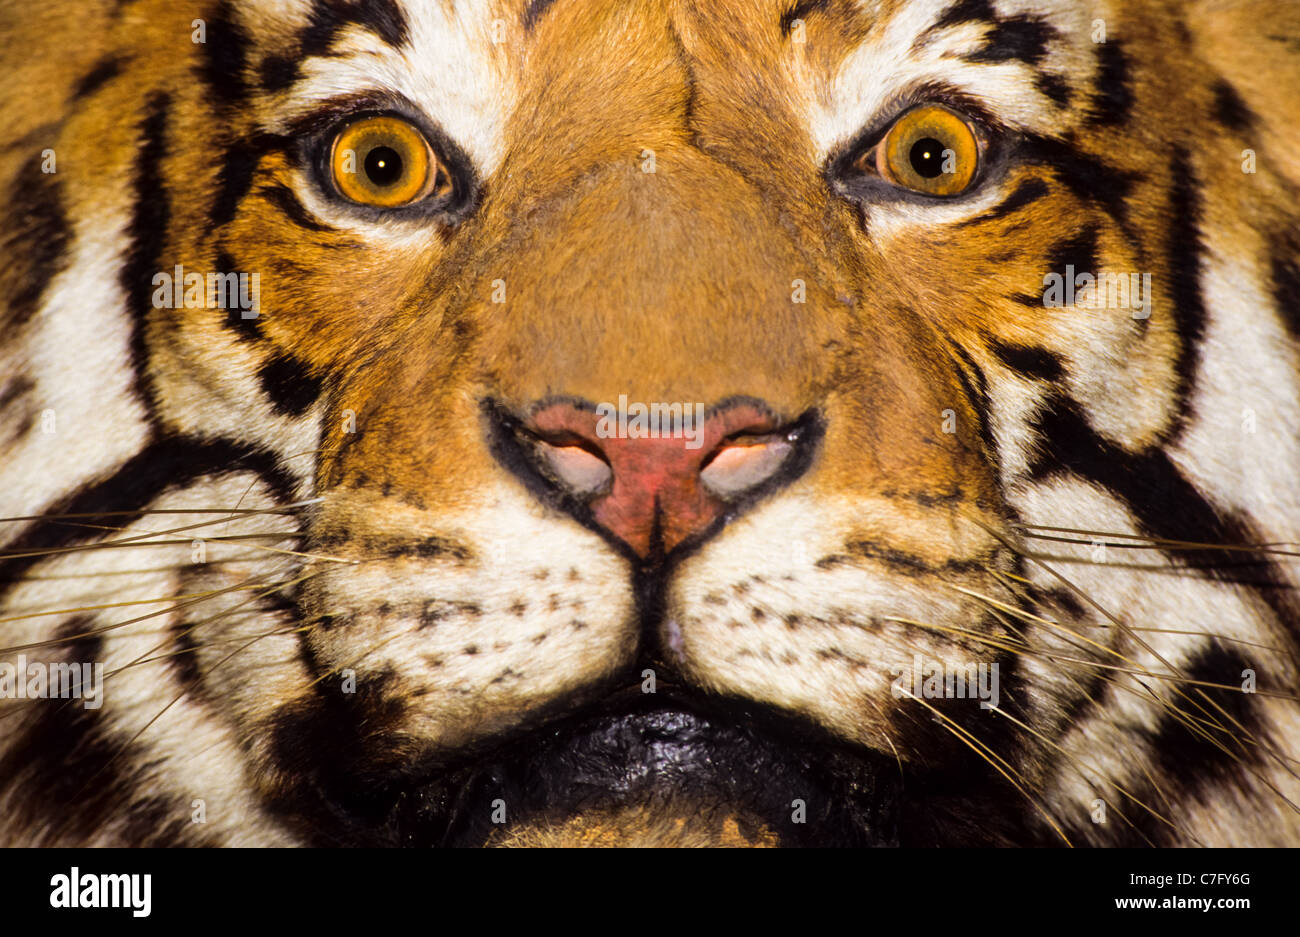 A close up portrait of a bengal tiger - Stock Image